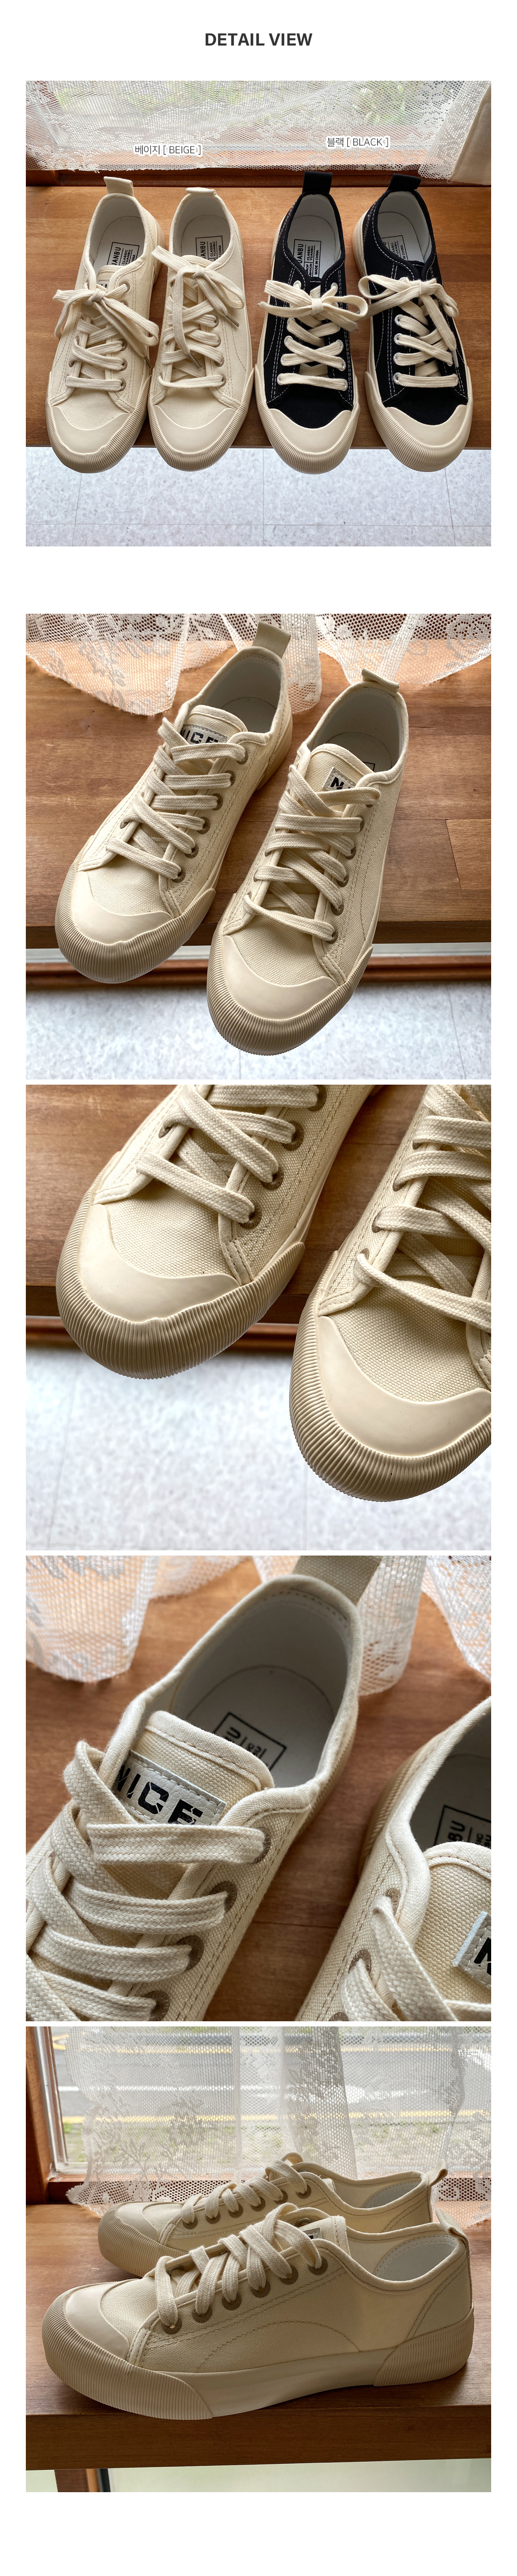 Doze All Day sneakers-2color